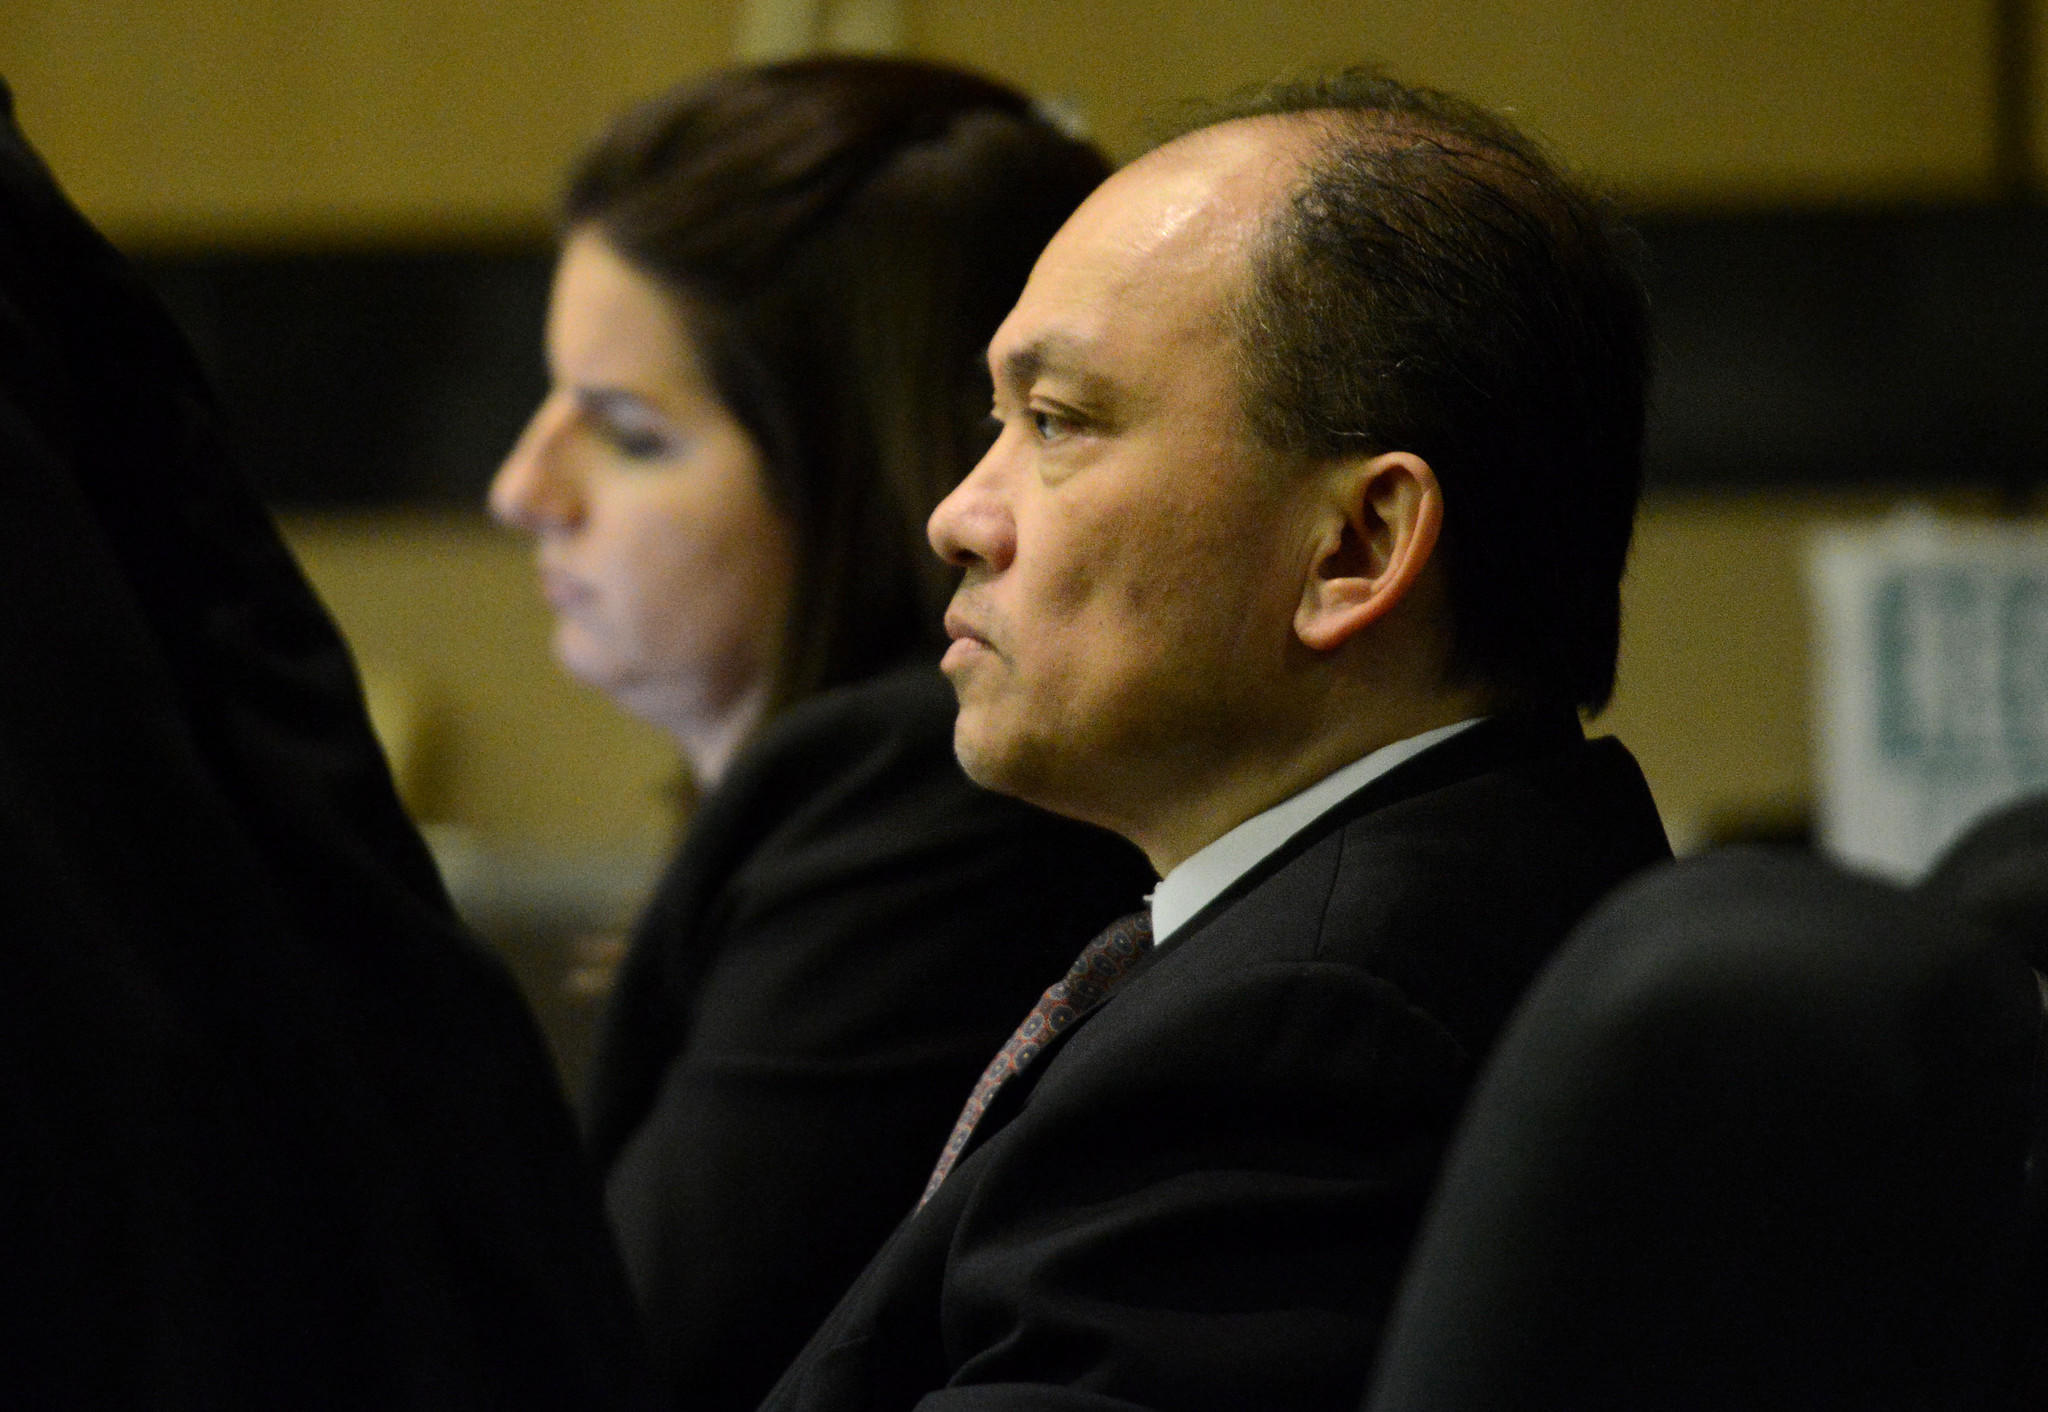 Jimmy Dac Ho, 51, sits in the Palm Beach County Courthouse during his trial for the death of Sheri Carter, 29. On April 17, jurors convicted Ho of first-degree murder. He was sentenced Friday to two consecutive terms of life in state prison. Carter worked as an escort, and was in her Casa Loma Boulevard home Jan. 31, 2011. Ho's attorney told jurors the killing was done in self-defense and was an accident. Jim Rassol, Sun Sentinel.